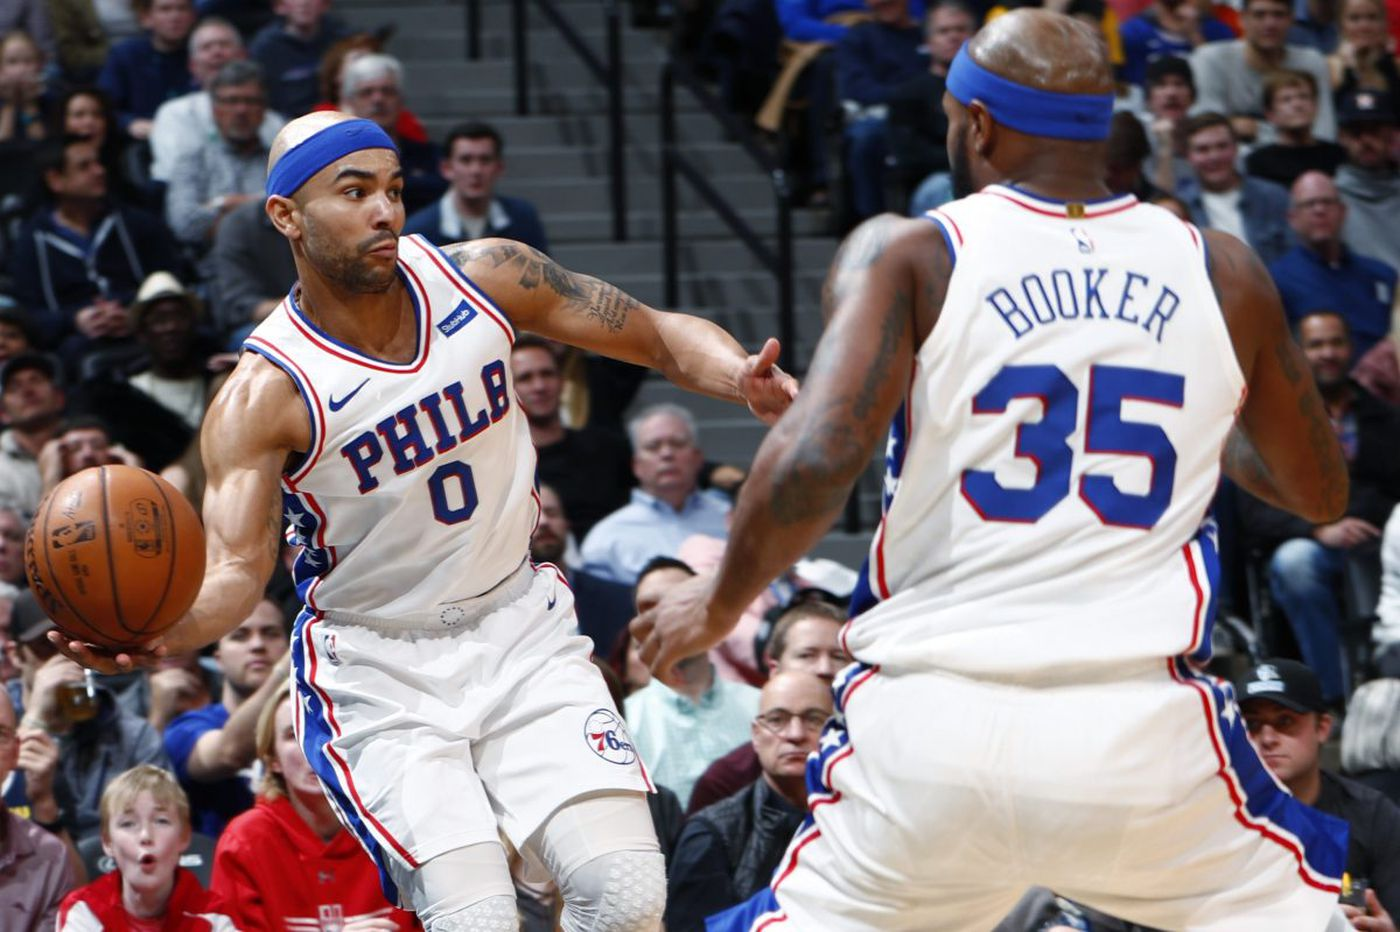 Sixers-Nuggets: Jerryd Bayless helps spark bench effort, and other quick thoughts from Philly's 107-102 win